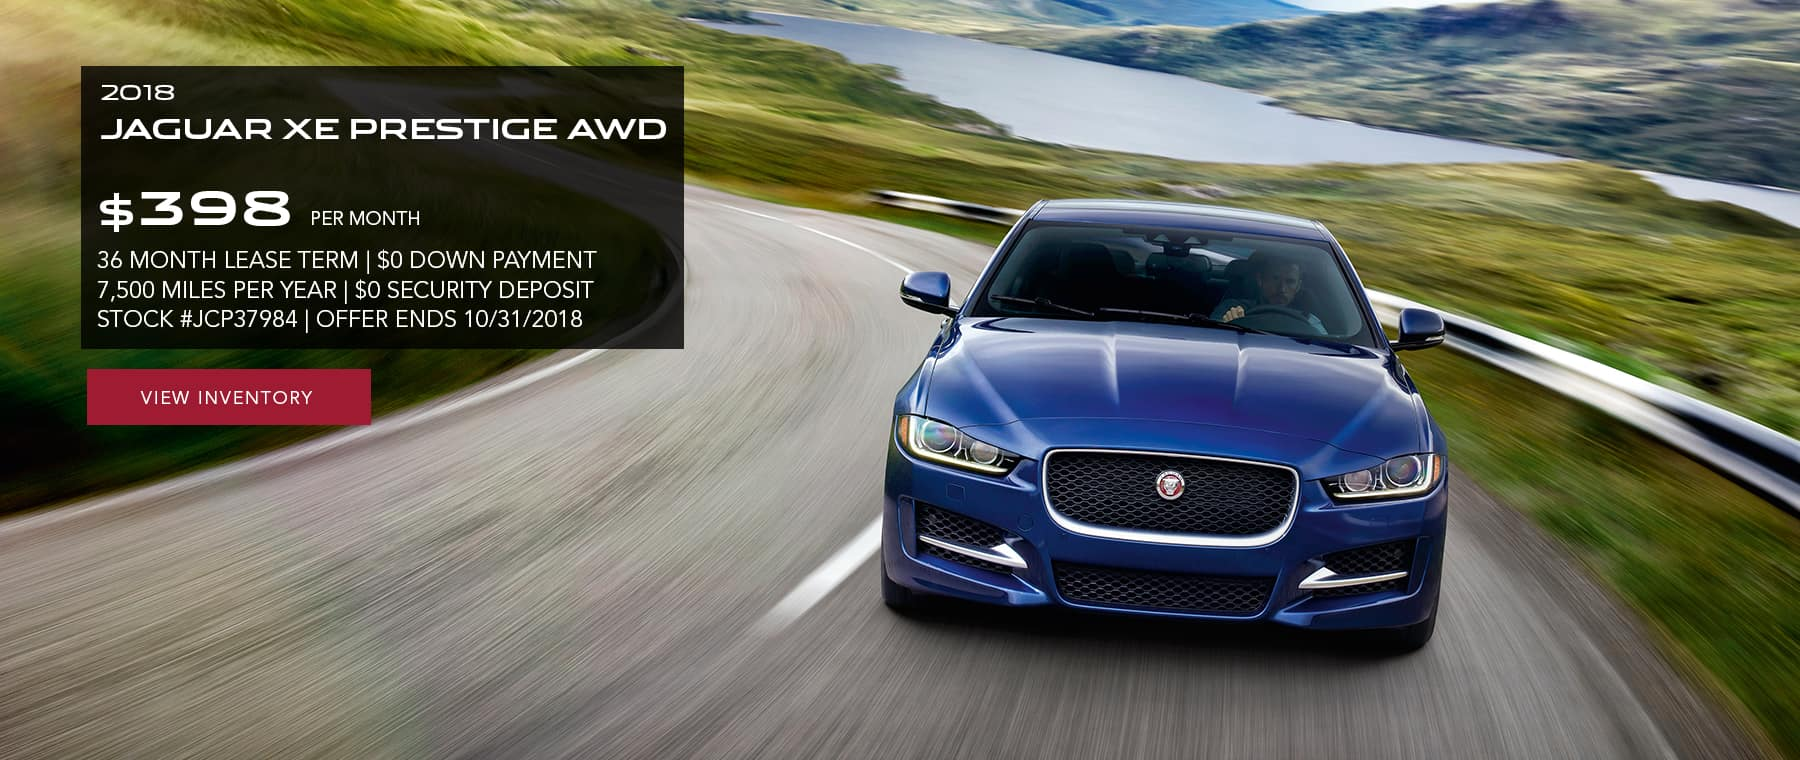 Attractive Check Dealer For Availability. Offer Must Be Presented At Time Of Purchase.  See Jaguar Of Paramus For Details.